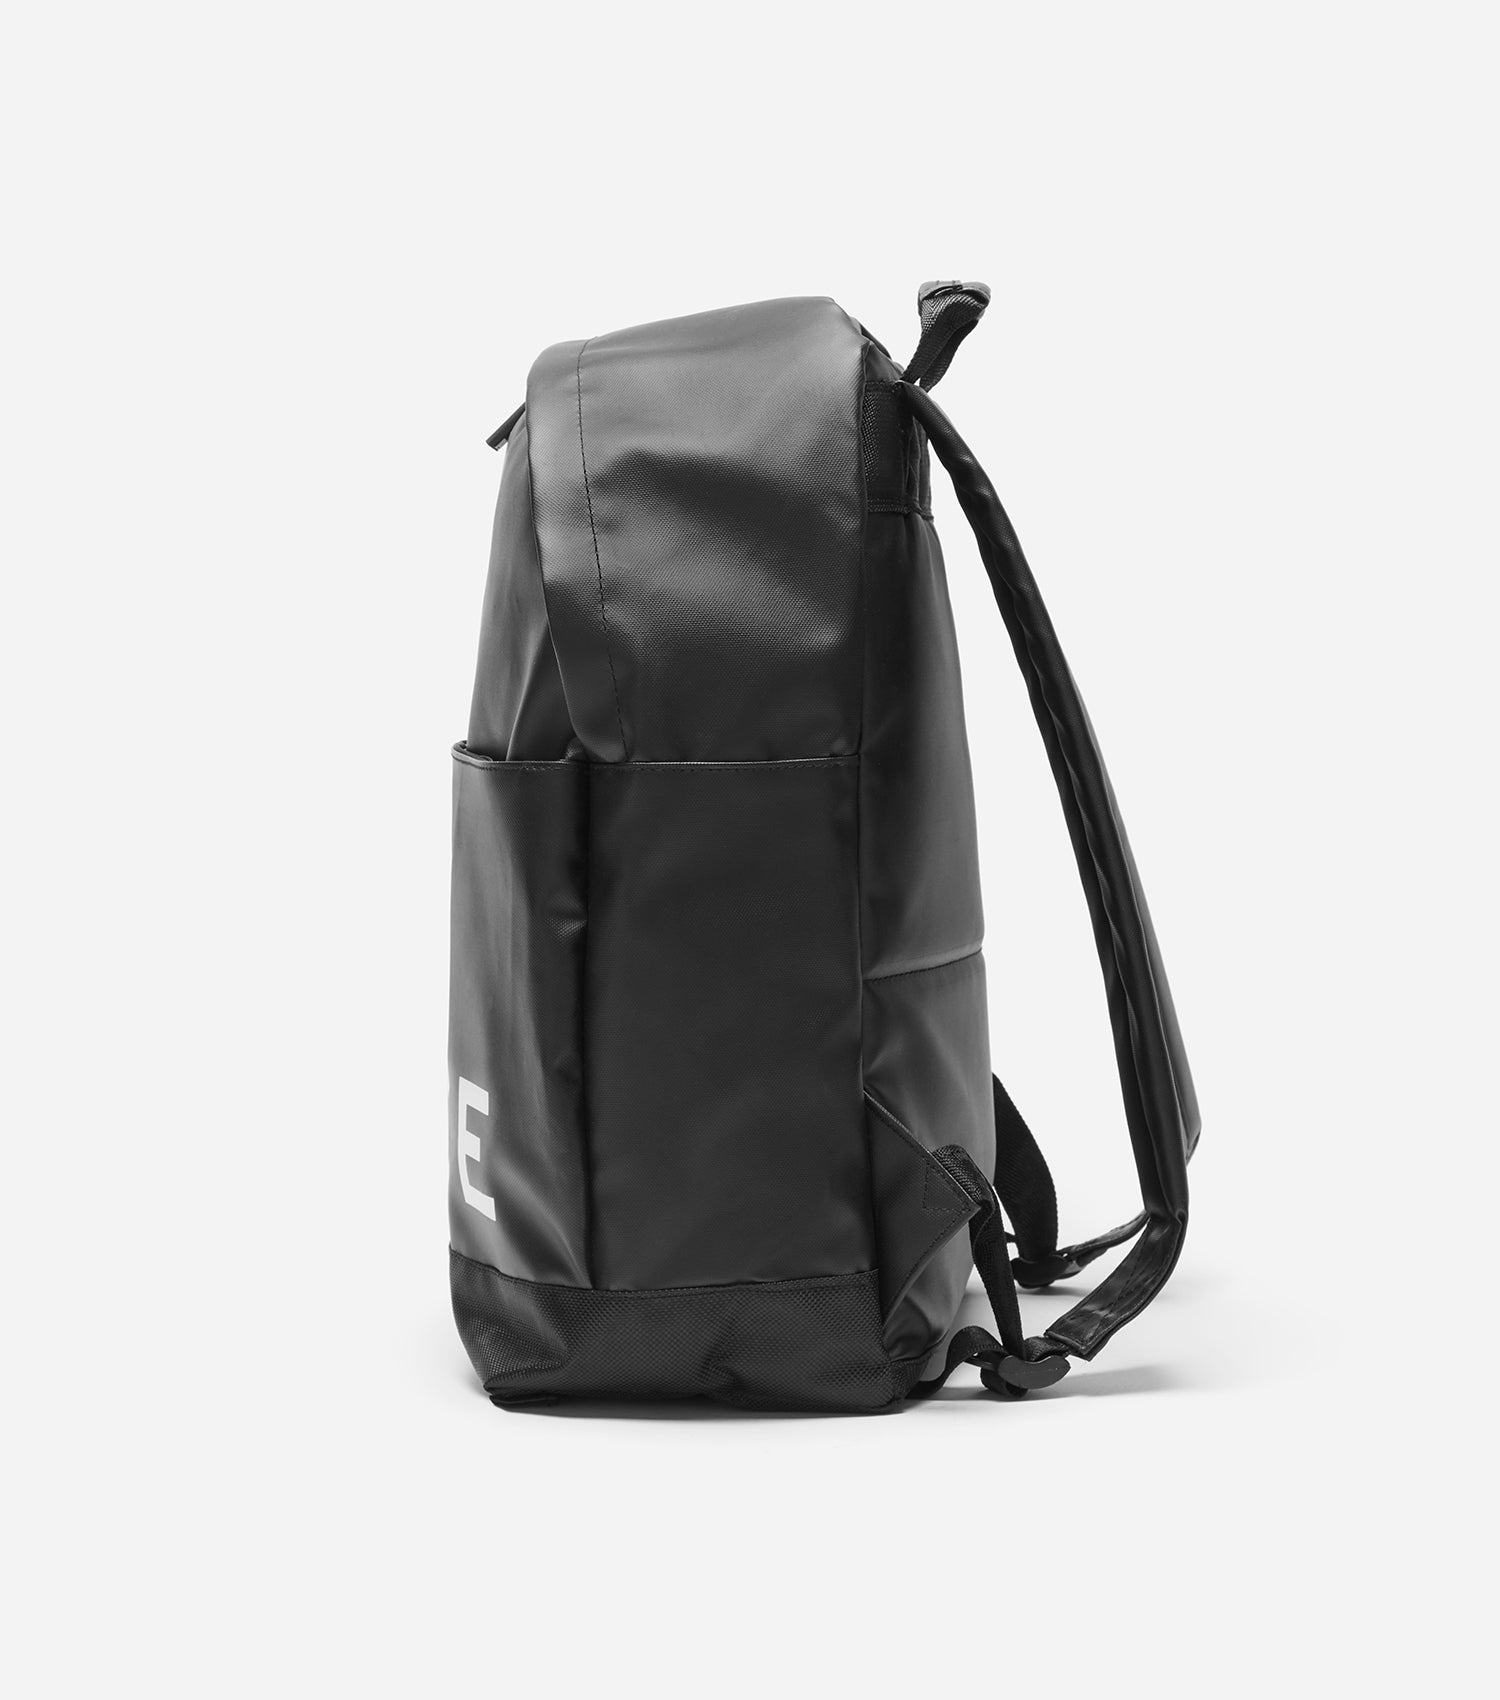 87d168a817b2c8 ... Cain backpack in black. Featuring interior laptop sleeve